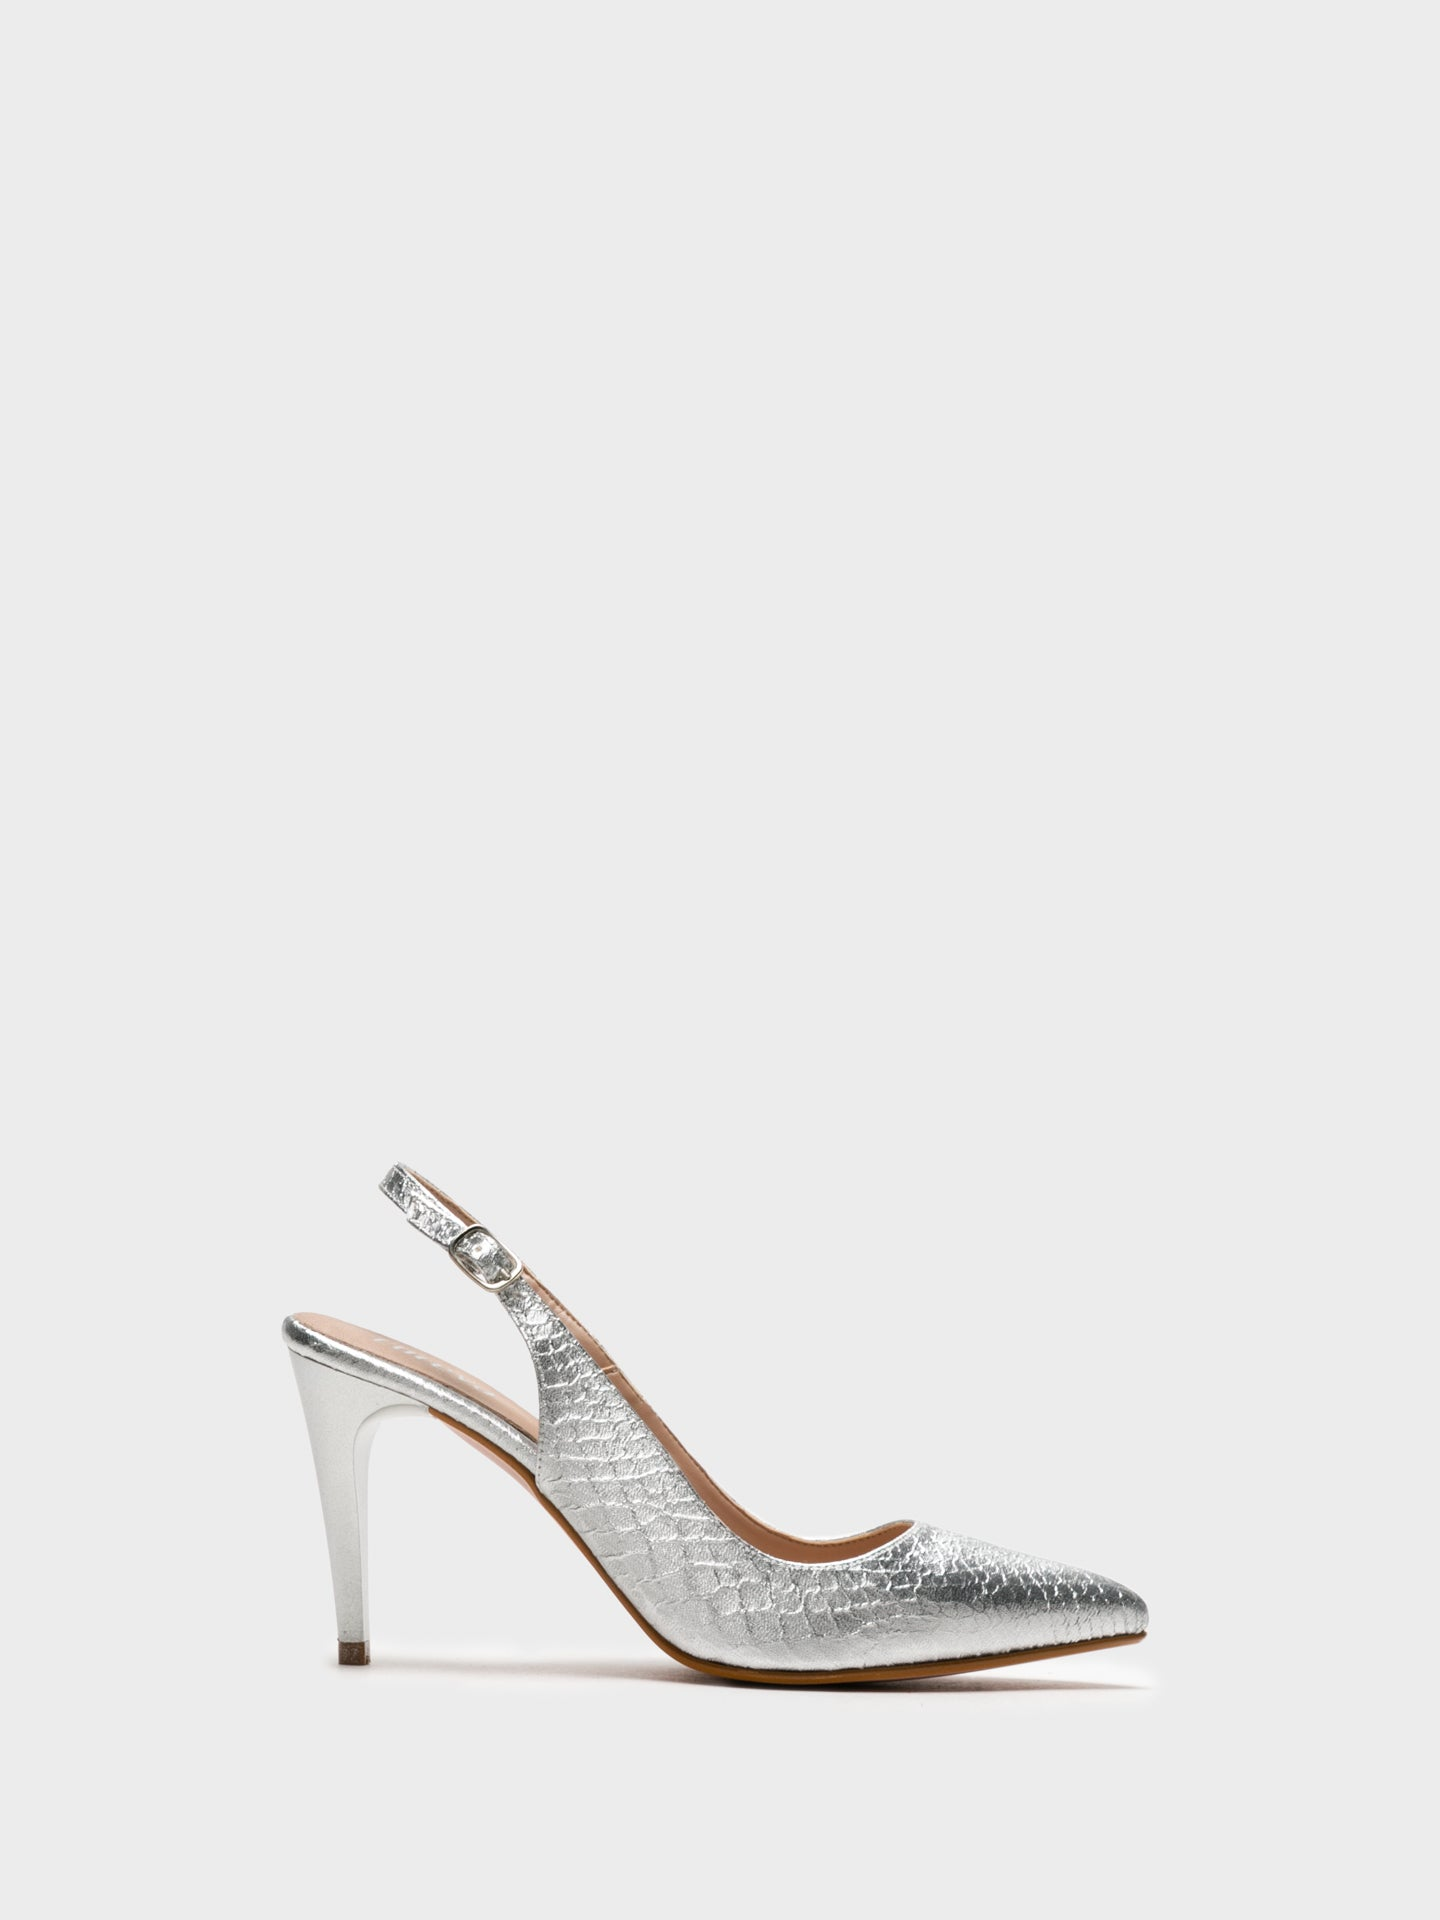 Foreva Silver Sling-Back Pumps Shoes